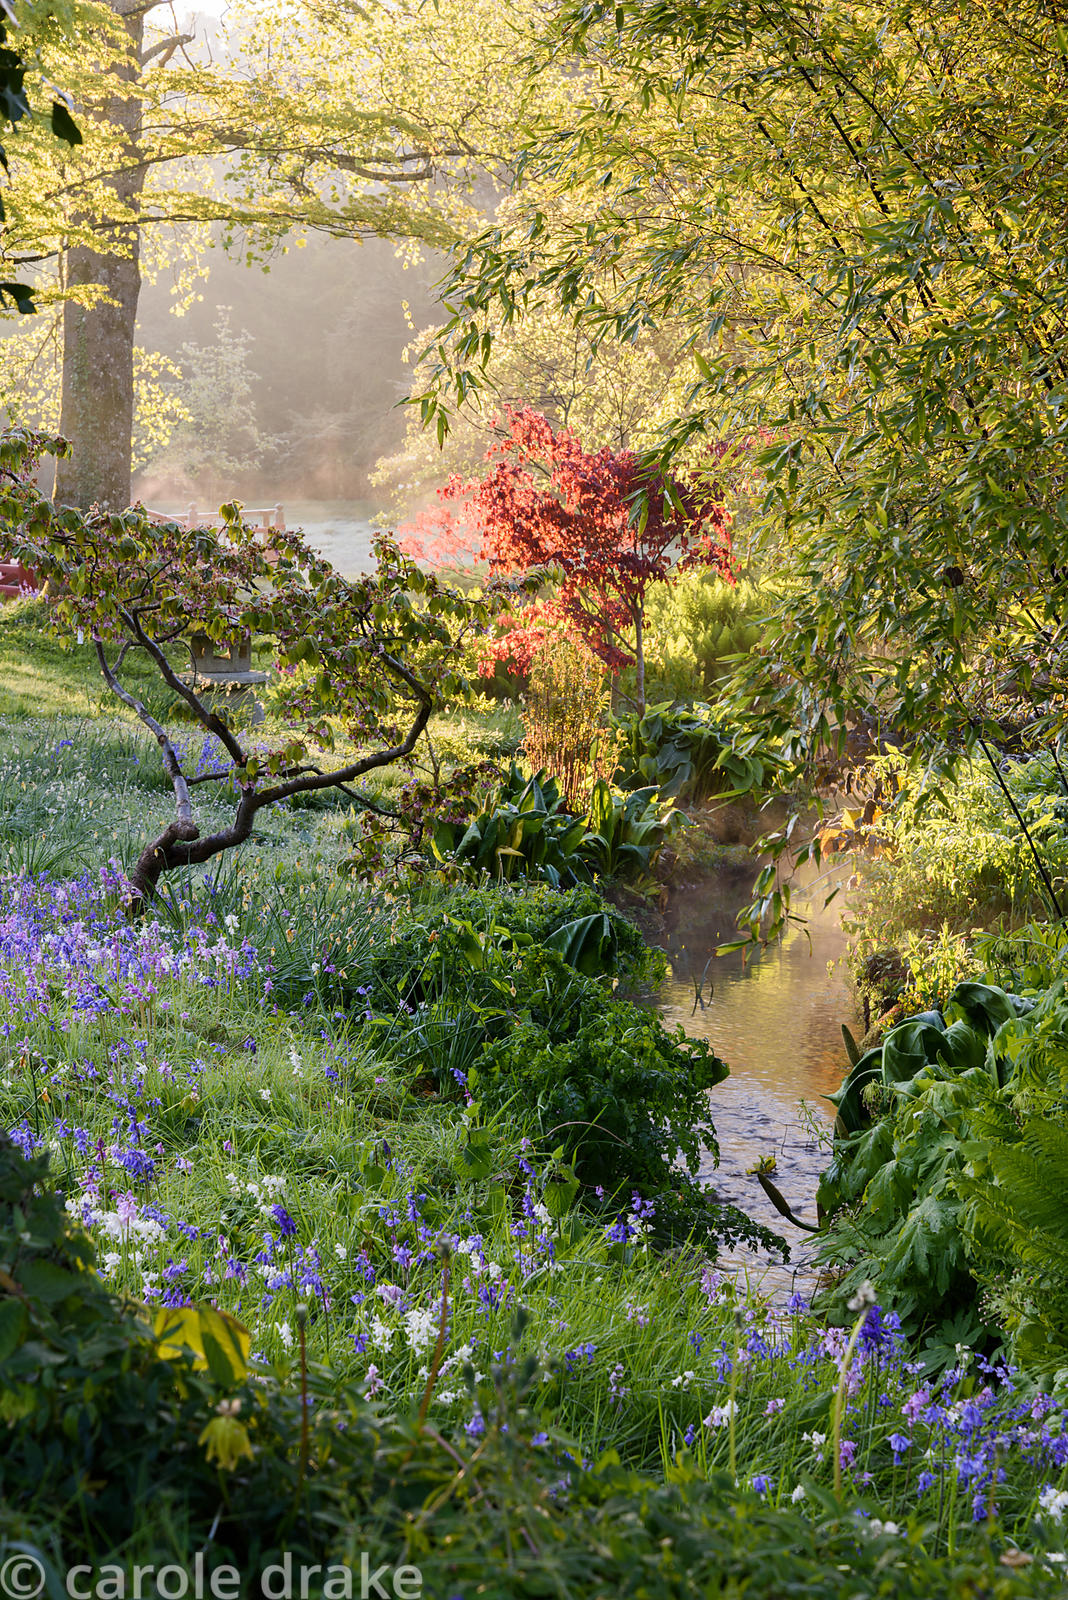 Bluebells, cherries, acers and bamboo in the watery Japanese garden at Heale House, Middle Woodford, Wiltshire